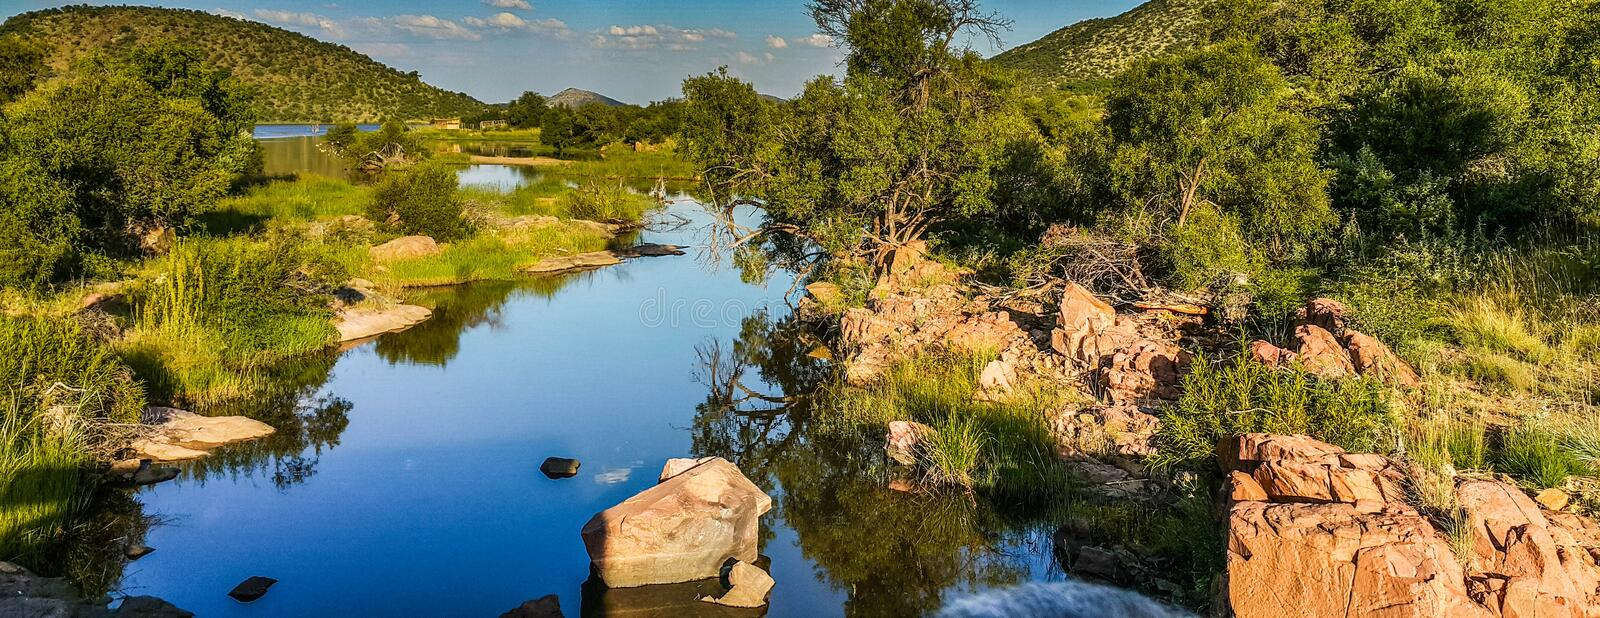 Calm River. Reflection and landscape in South Africa stock photo